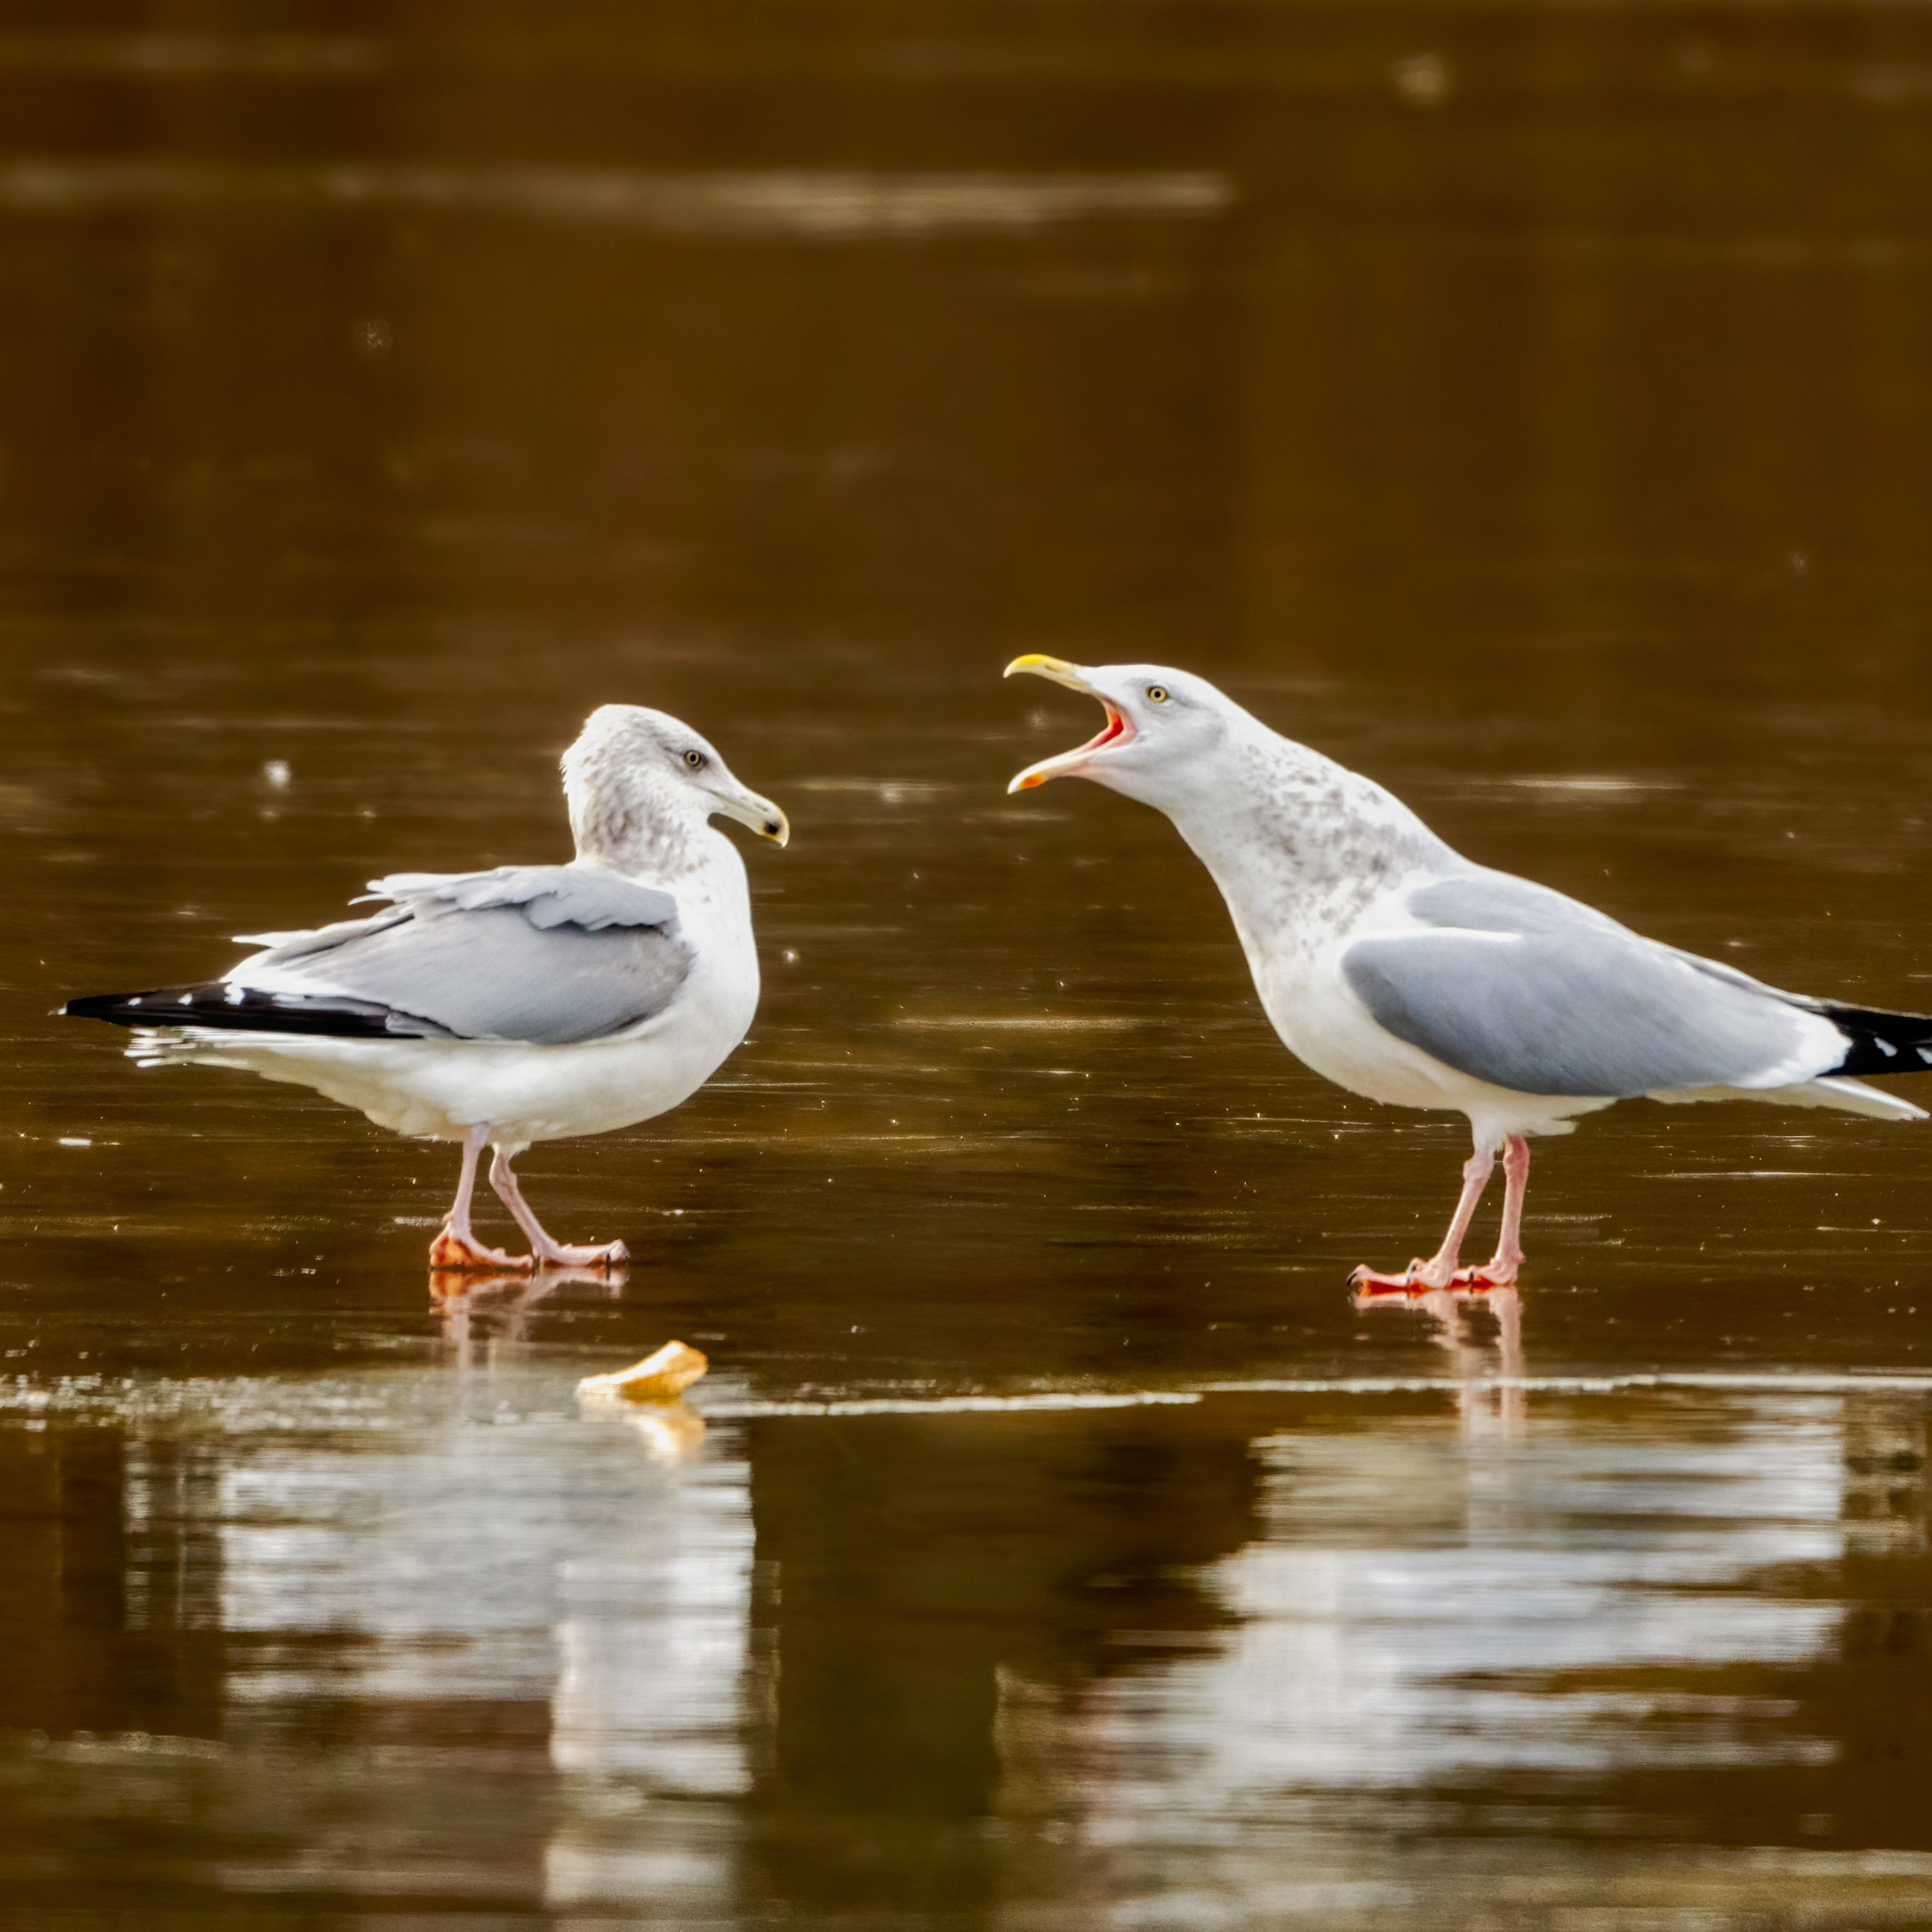 Herring Gulls are among the many seabird species impacted by PSP toxins. (T. Nord)